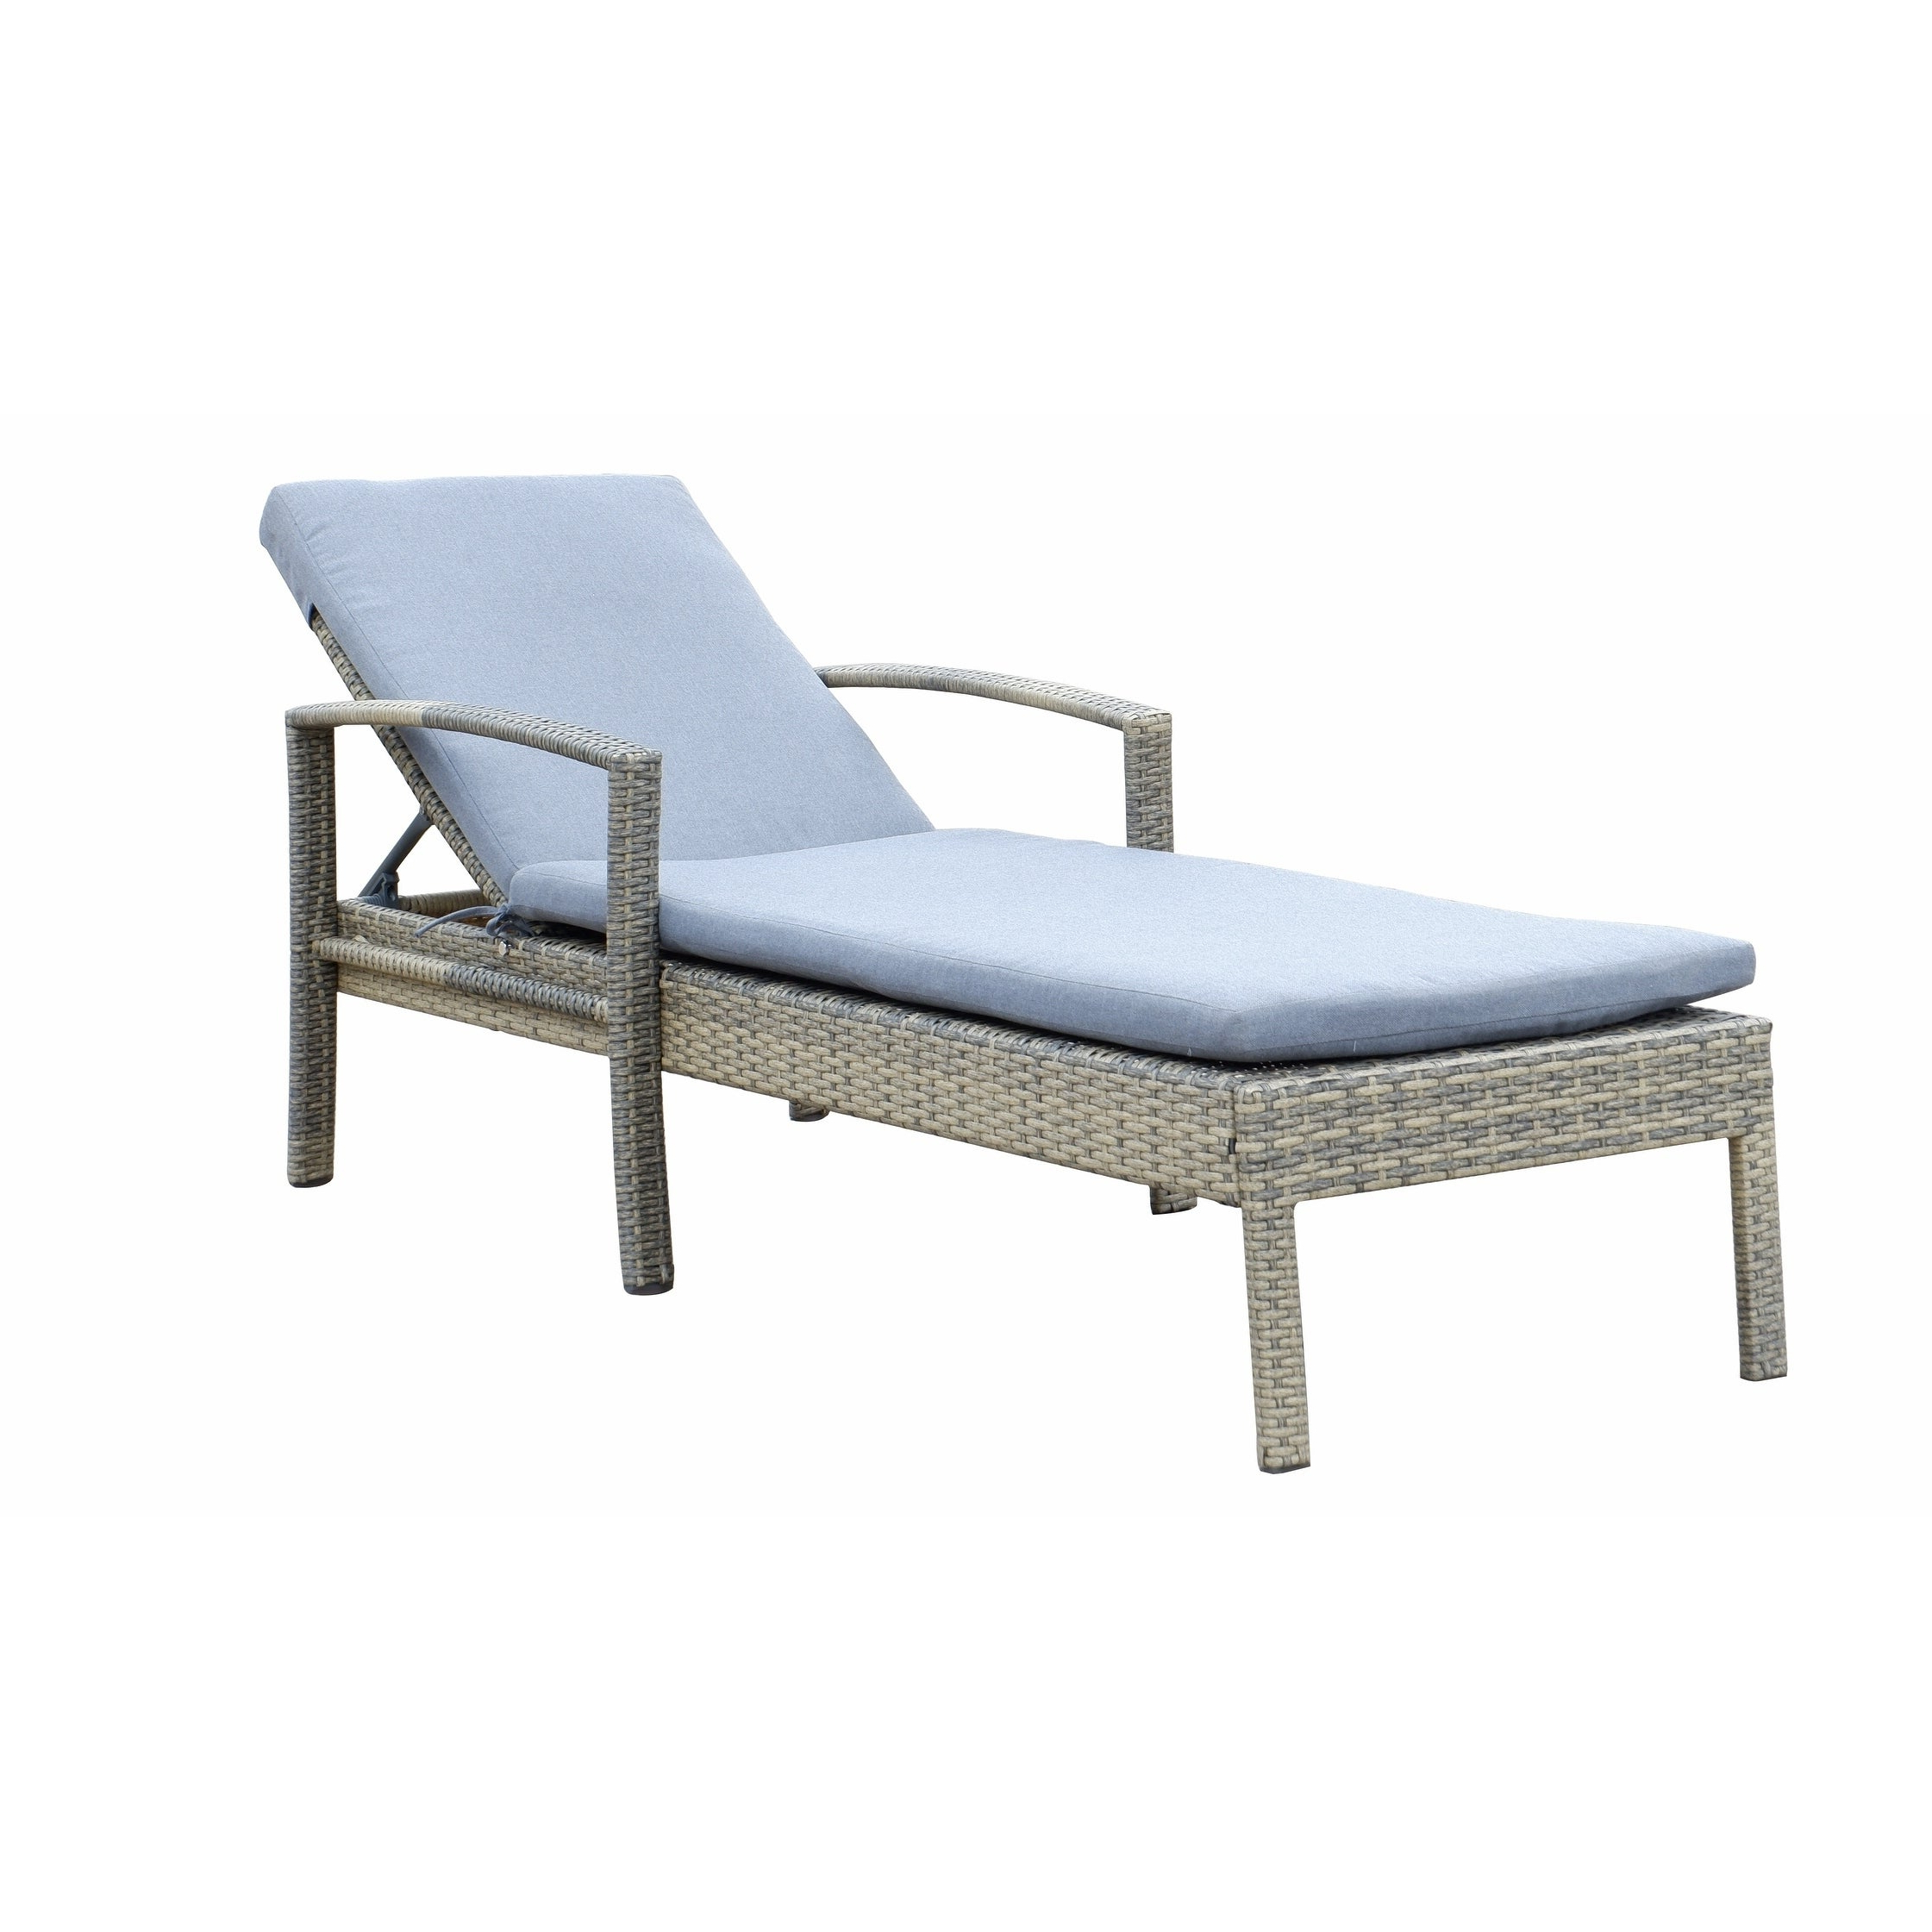 Well Known Newport Chaise Lounge With Cushion For Modern Home Wailea Woven Rattan Loungers (View 12 of 25)